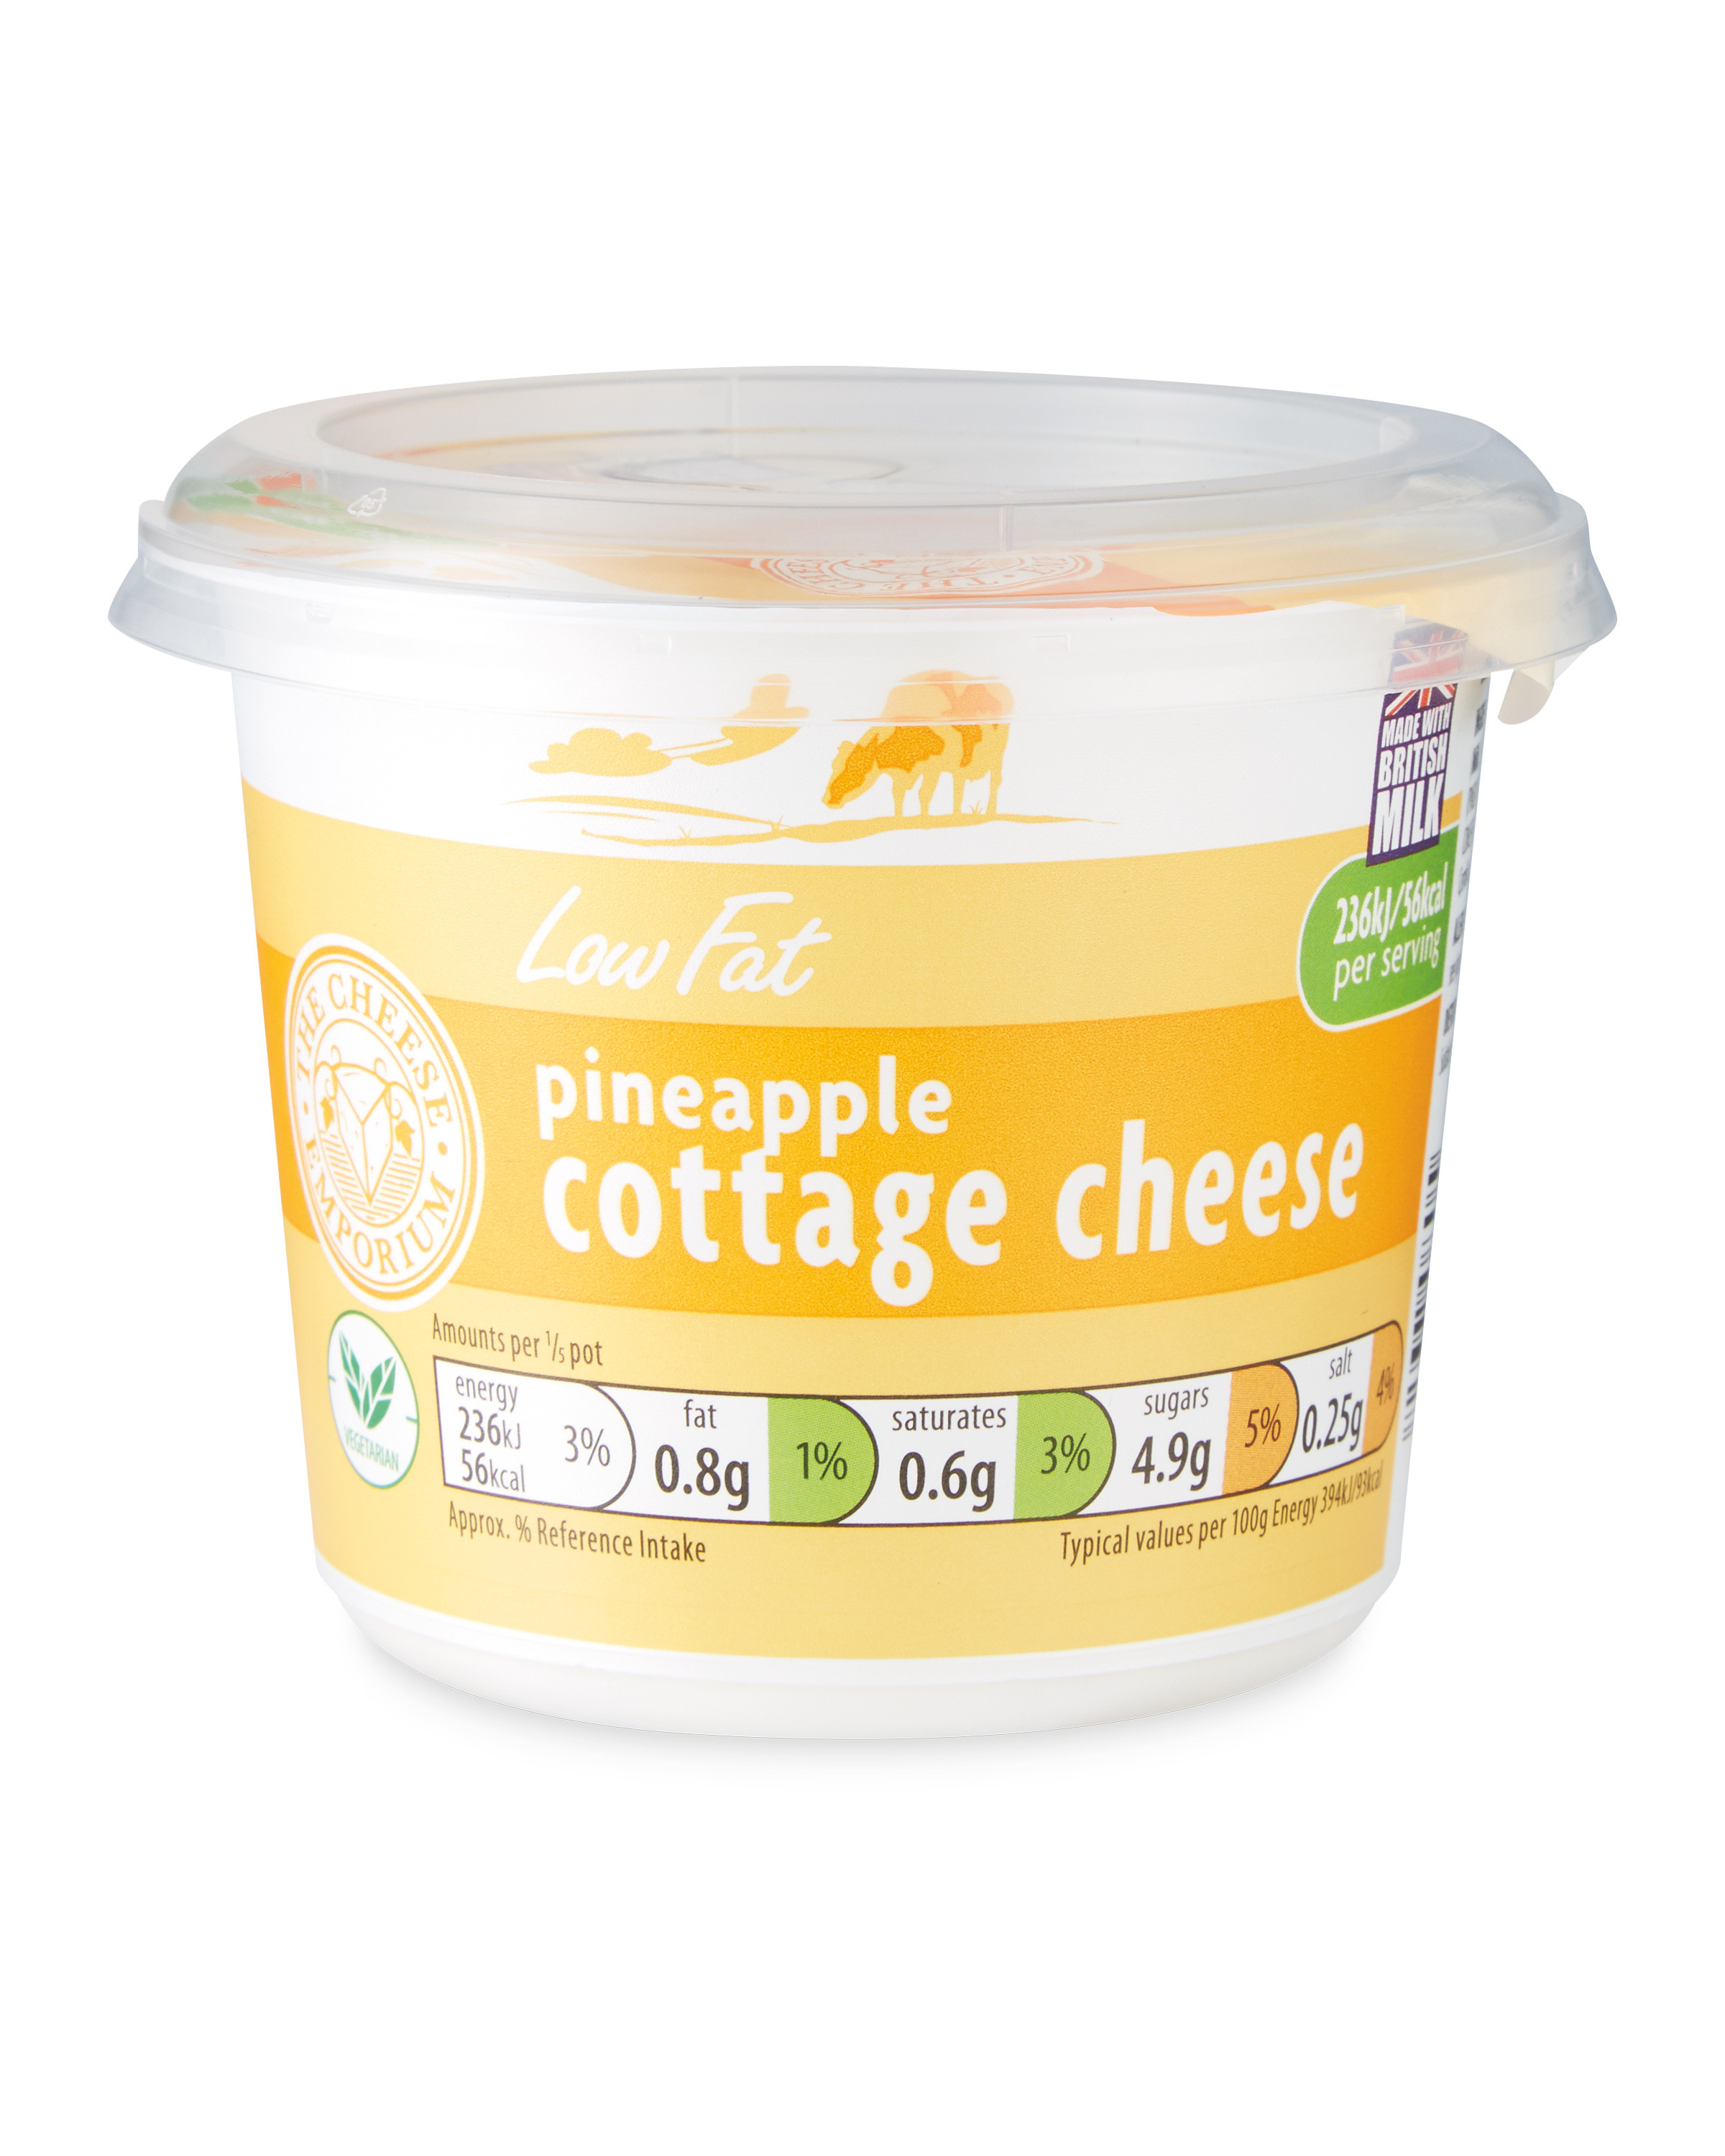 Low Fat Pineapple Cottage Cheese